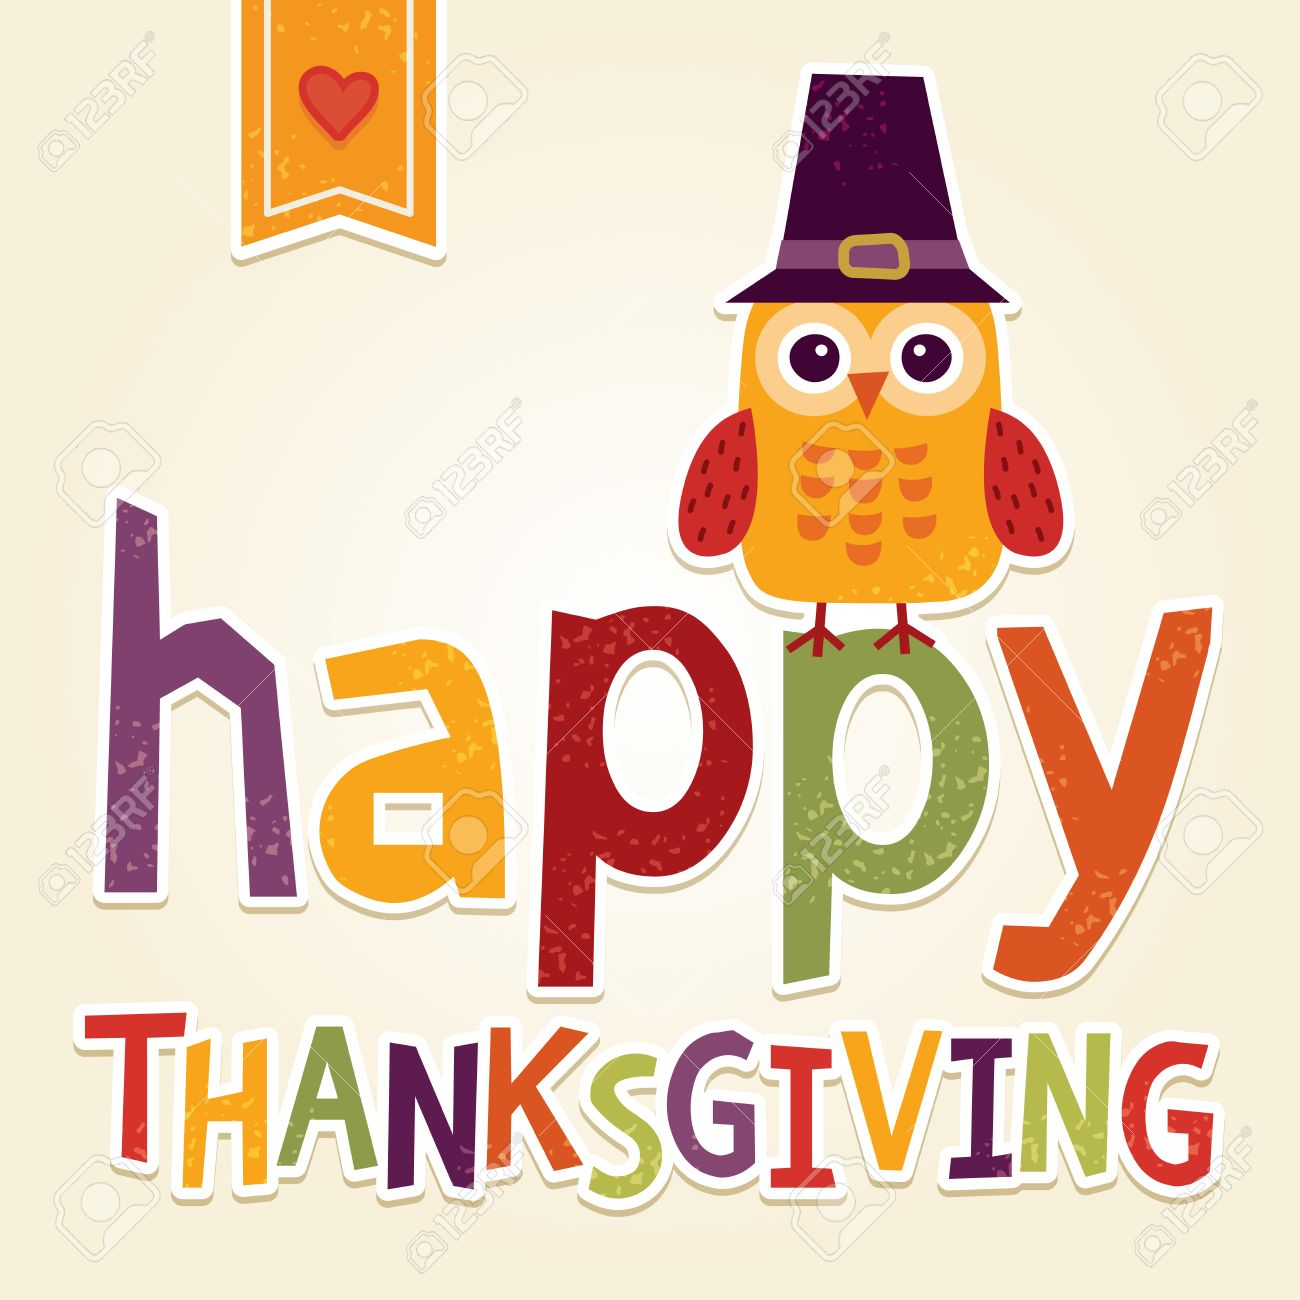 Happy Thanksgiving Day Card Poster Or Menu Design With Cute Owl In Pilgrim Hat